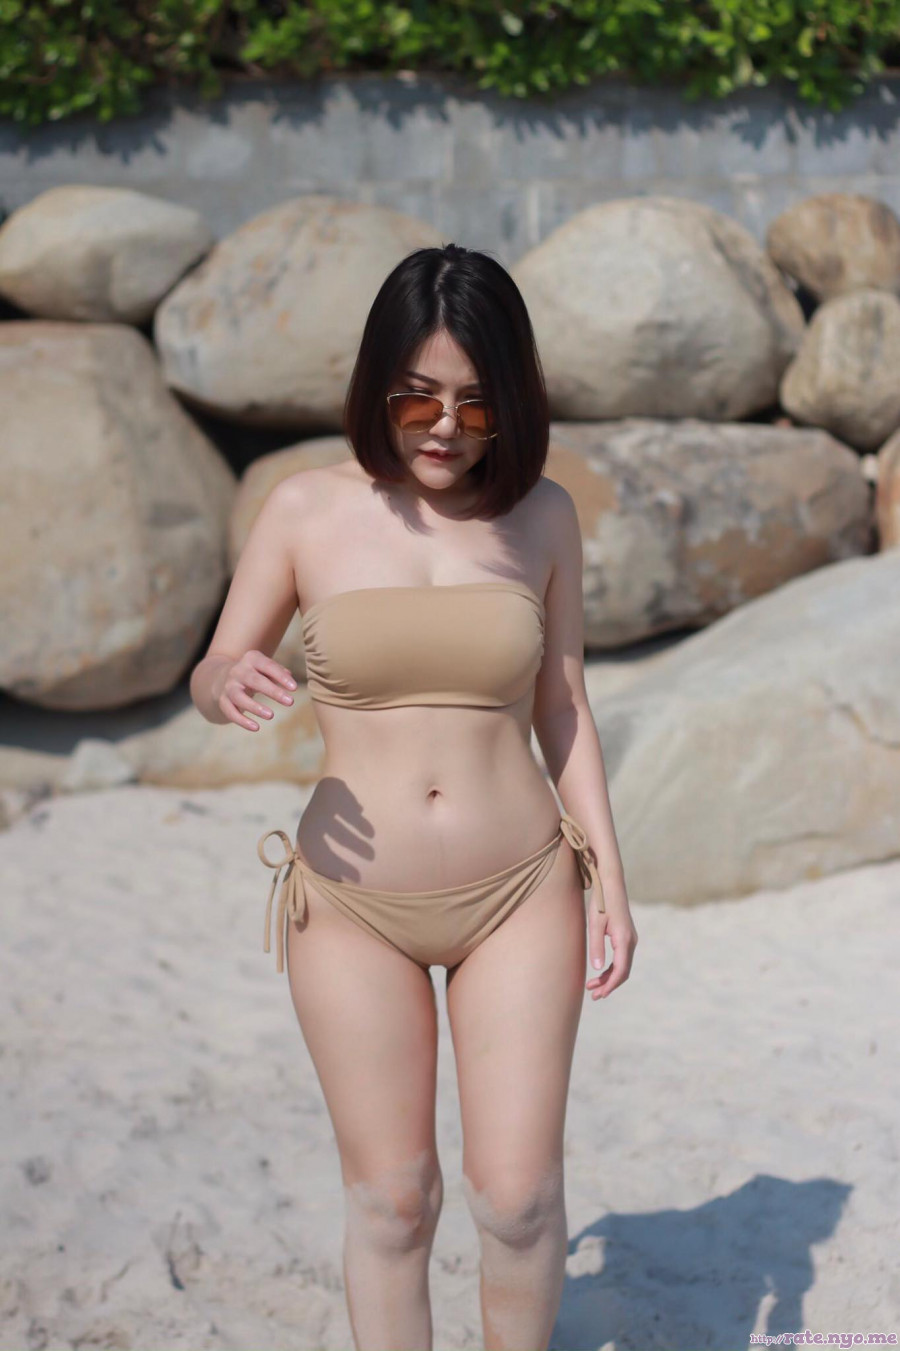 bikini breasts cleavage legs midriff shoulders sunglasses thai thighs